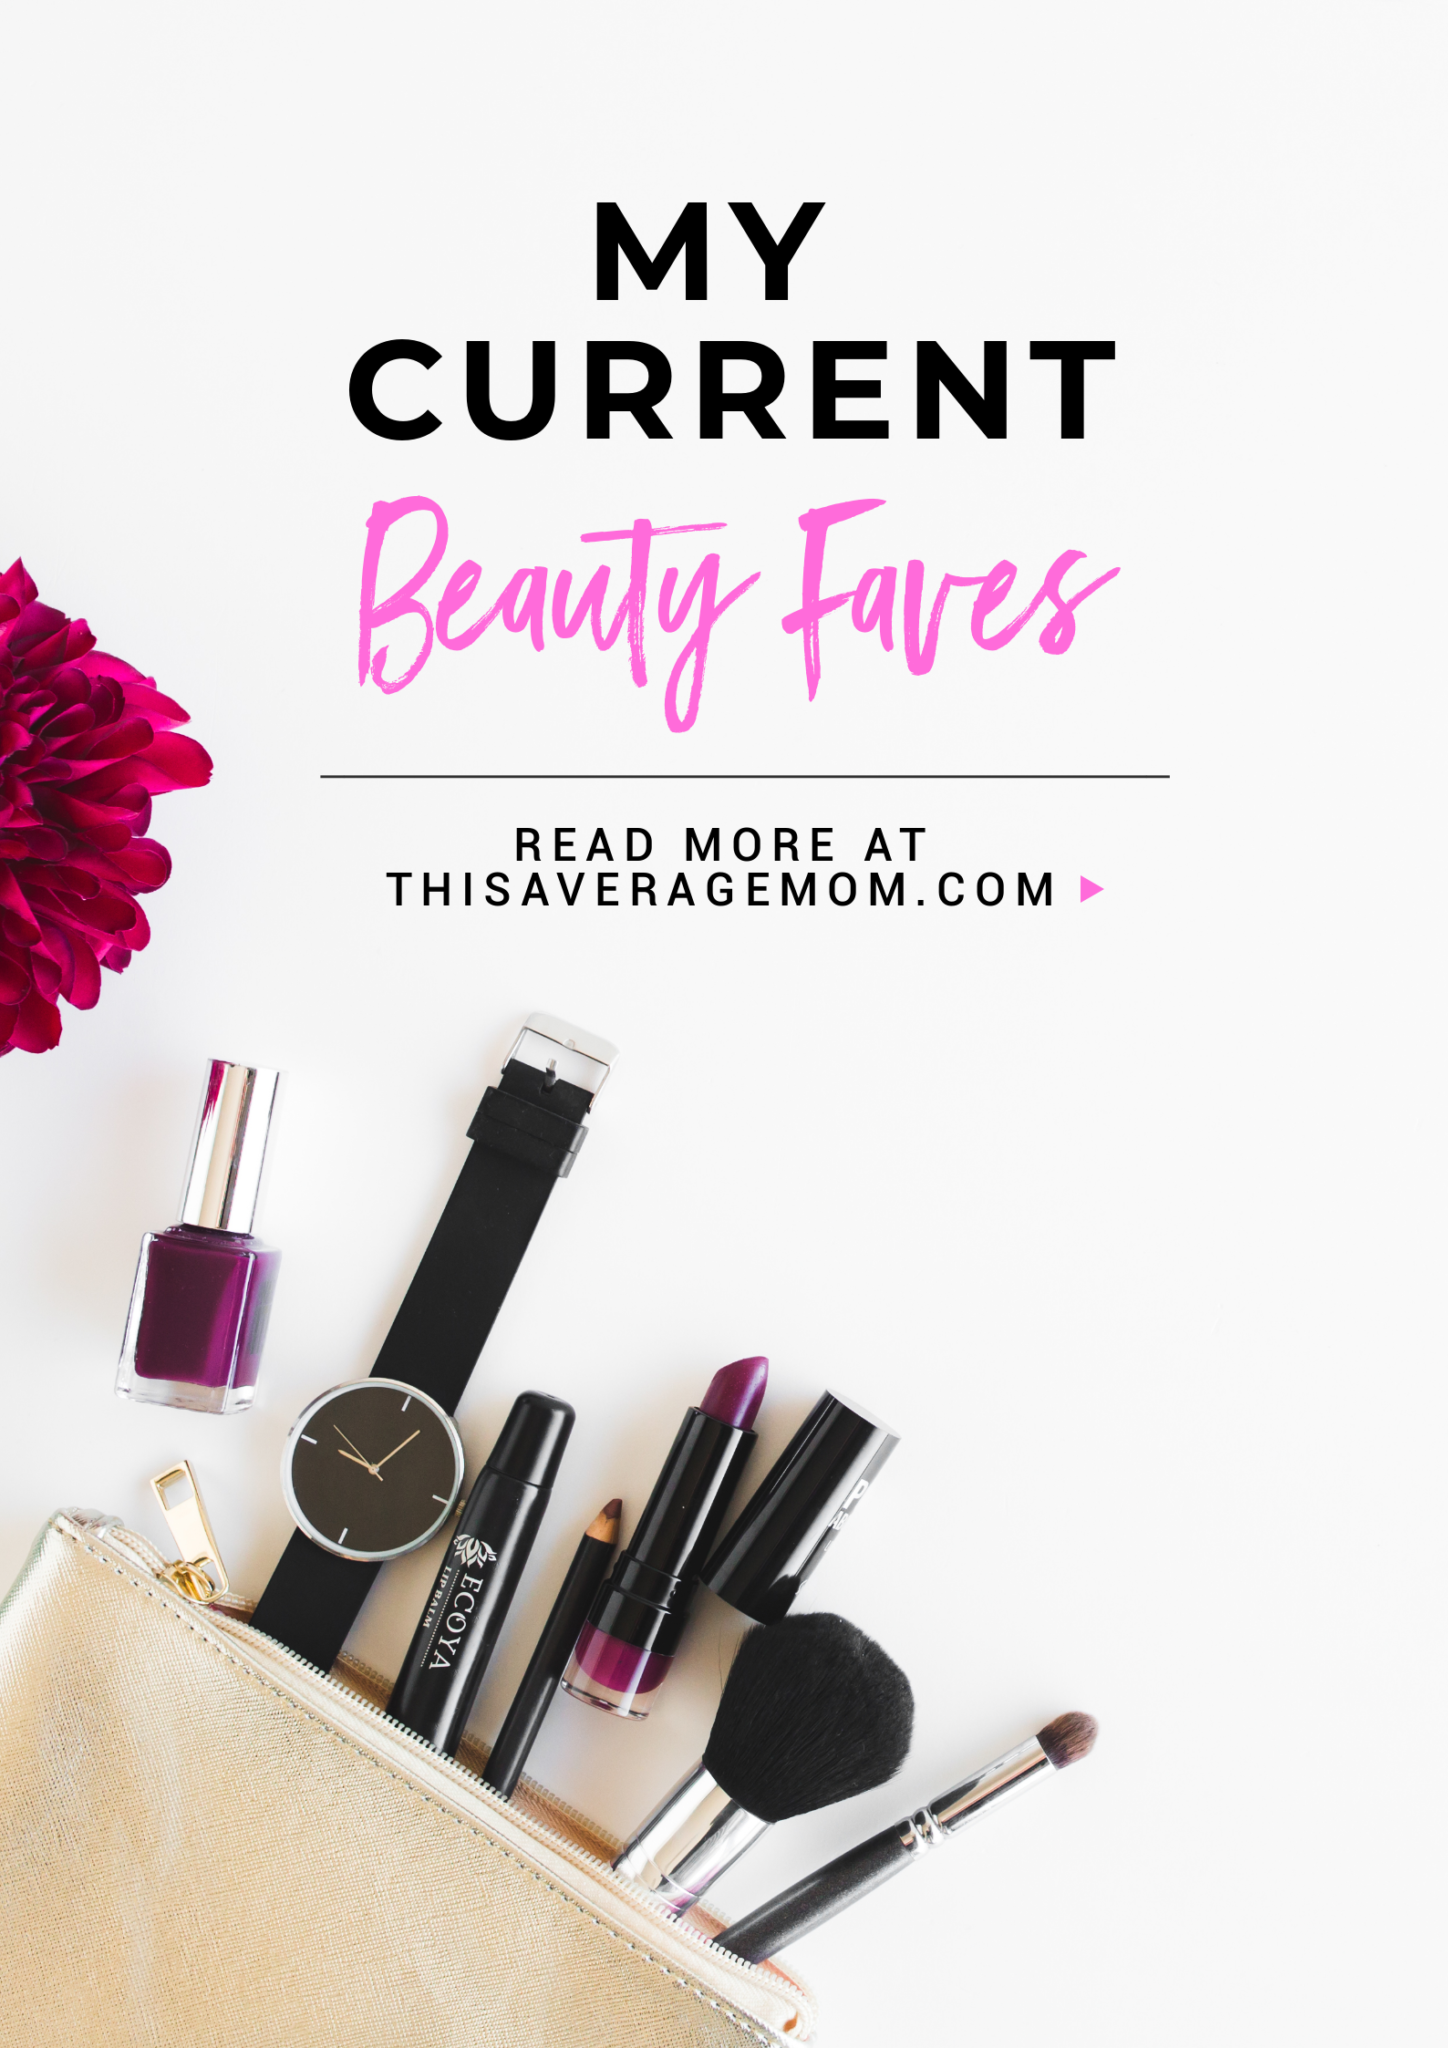 Who doesn't love a good beauty find? I'm sharing my five current beauty favorites on the blog today!